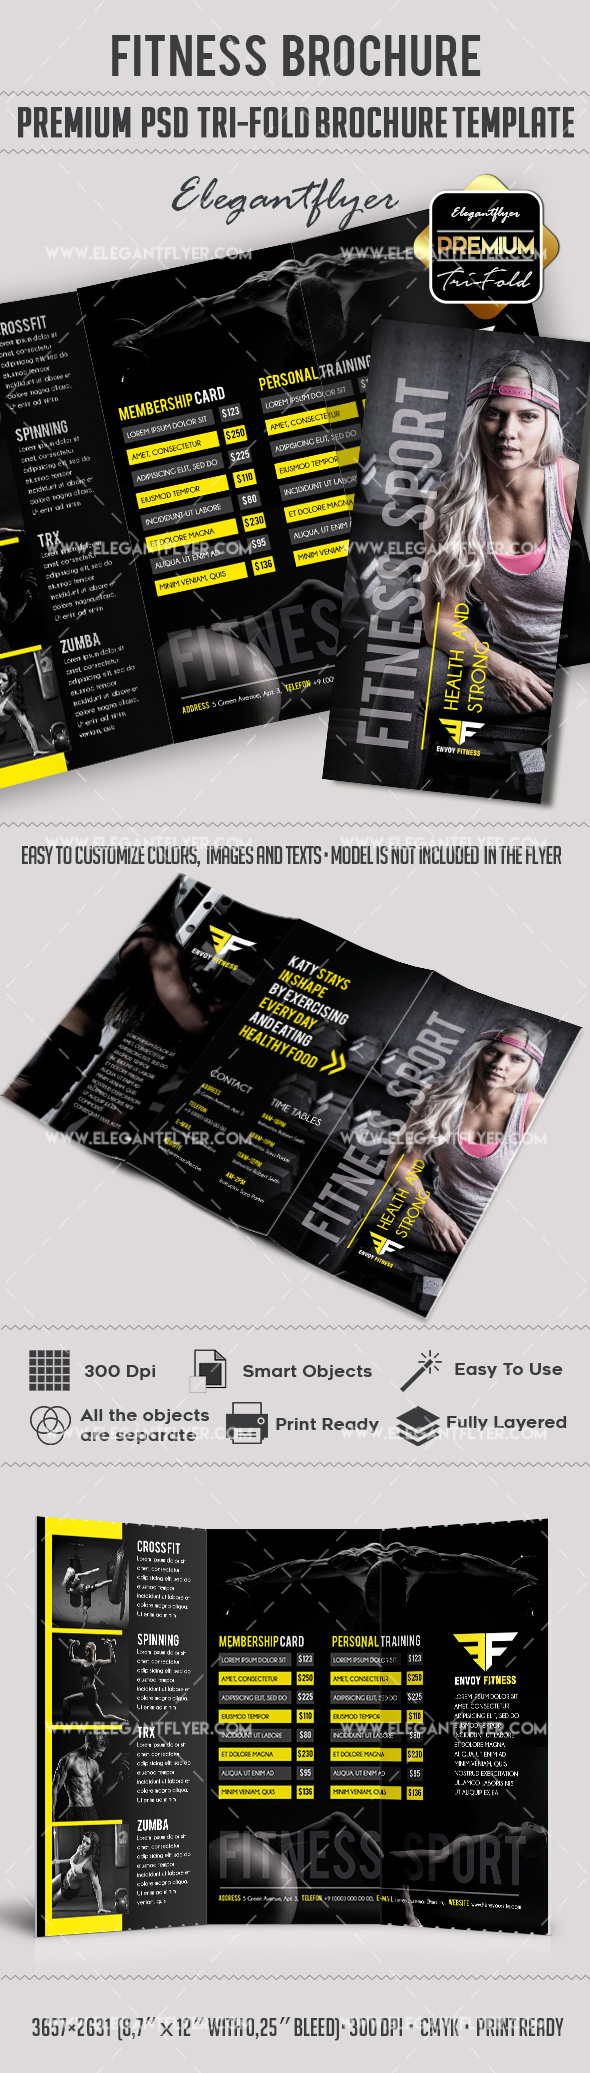 Fitness Premium TriFold PSD Brochure Template by ElegantFlyer – Fitness Brochure Template